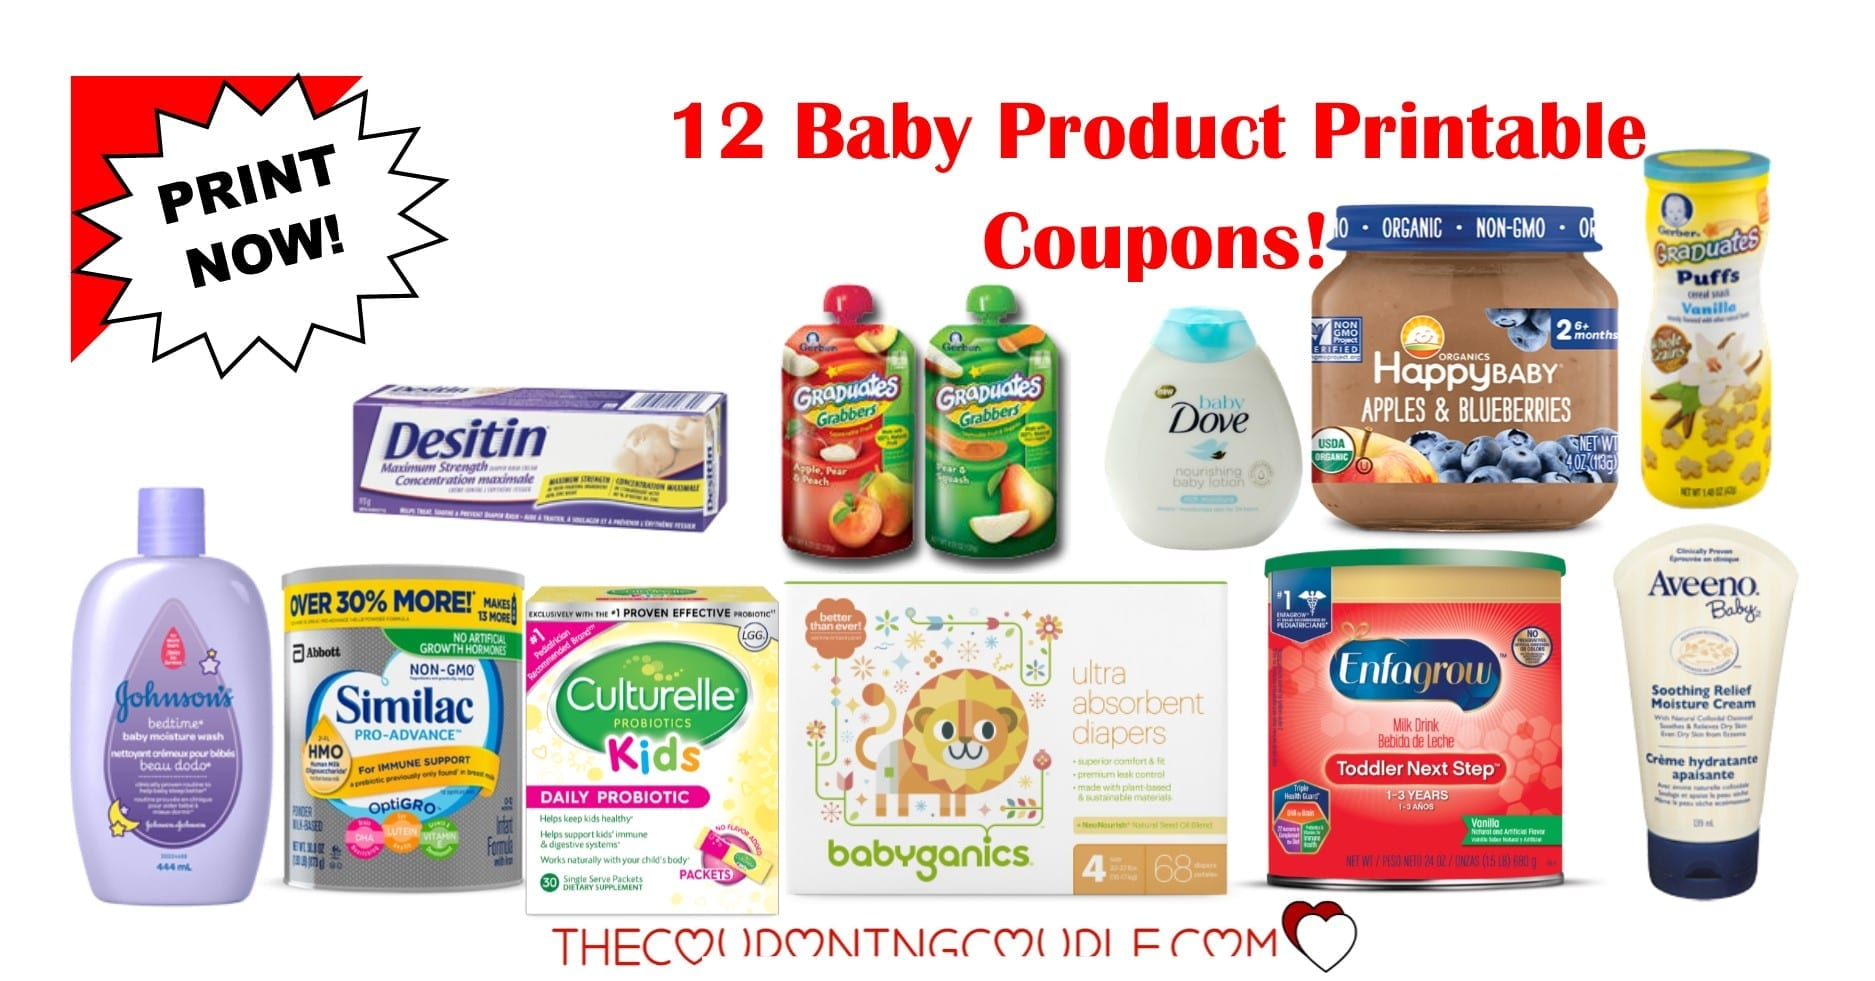 12 baby product printable coupons ~ over $27 in savings!